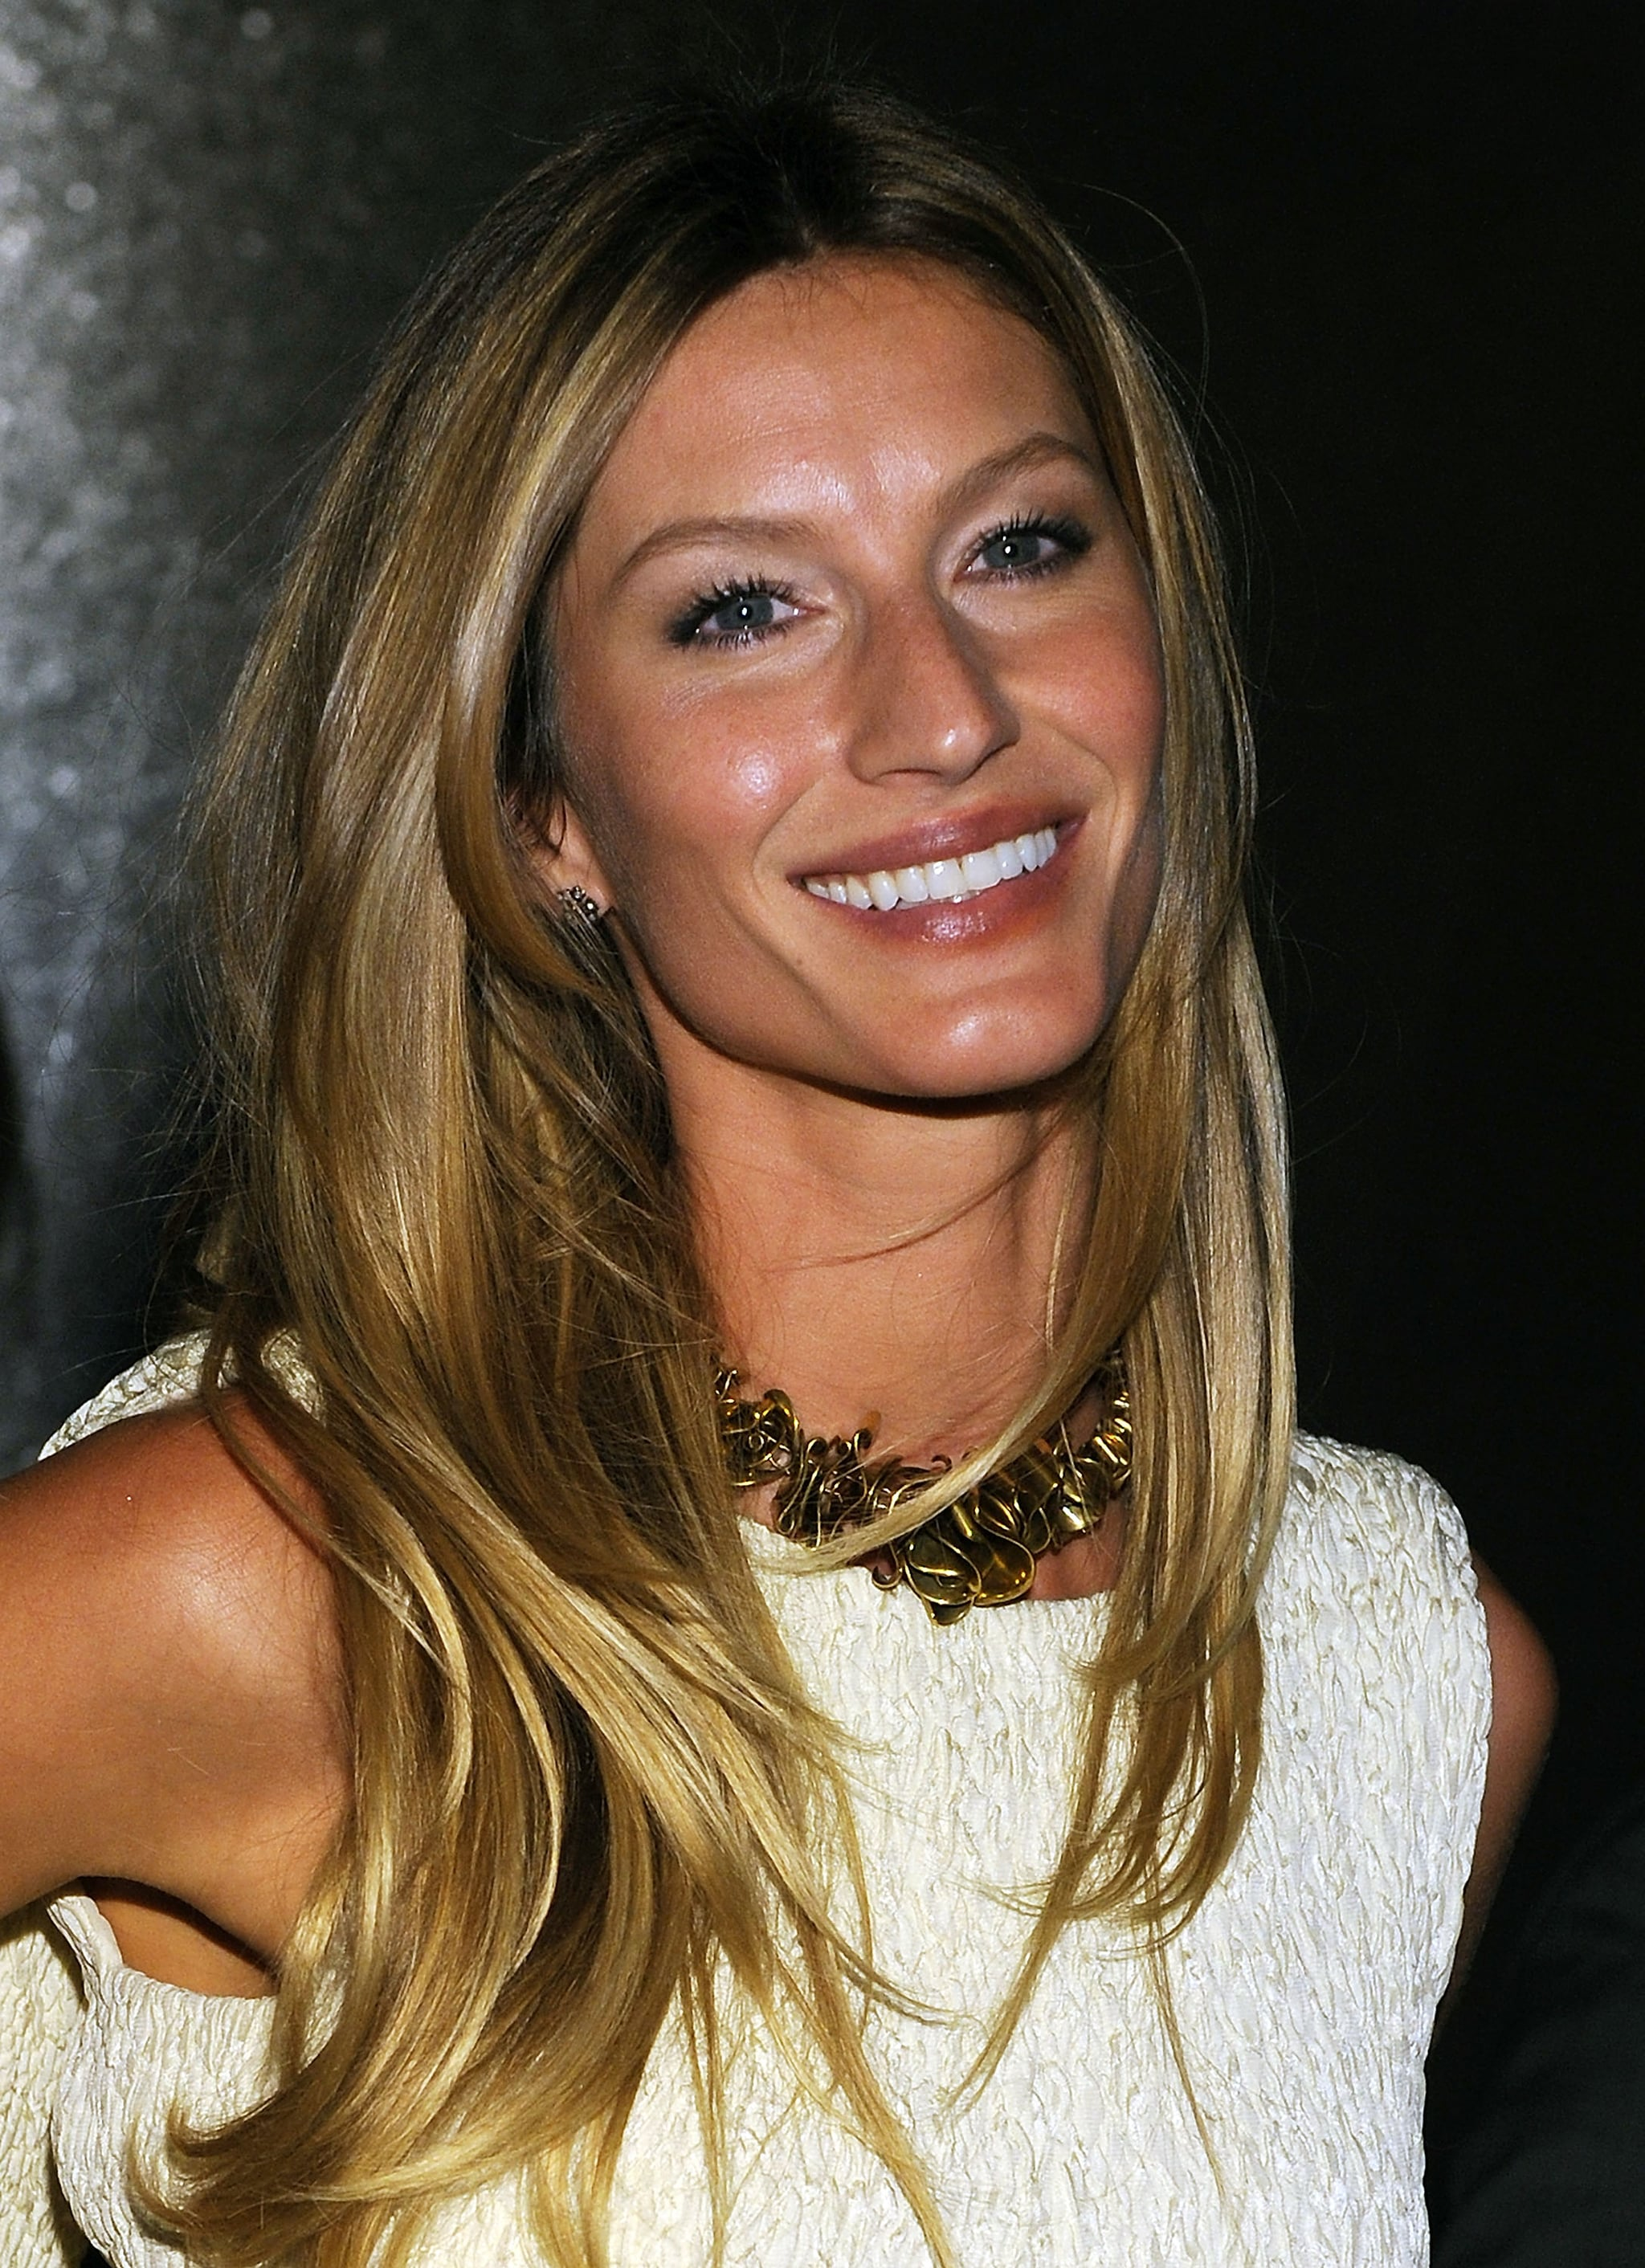 Her honey-blond hair was cut into choppy layers and styled straight at an event in 2010.